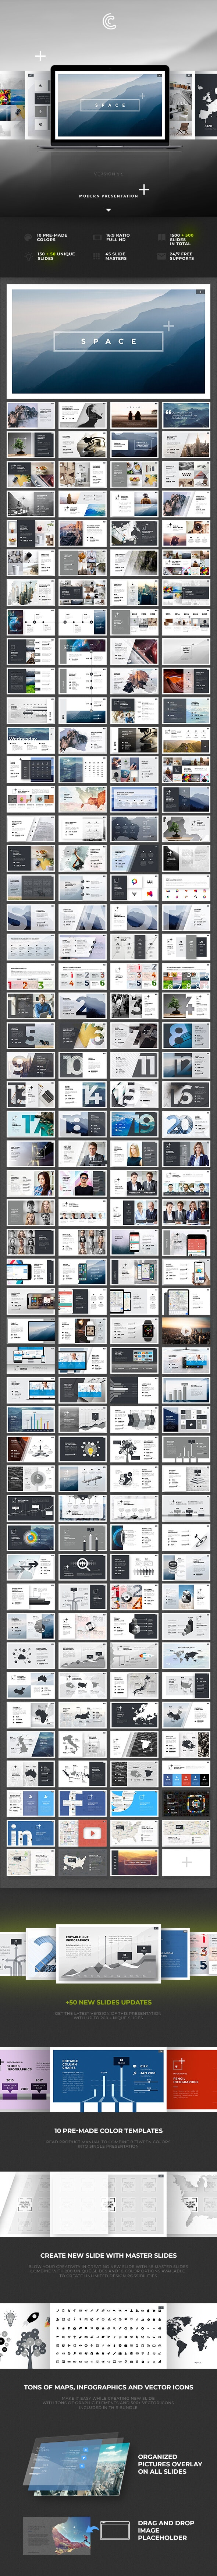 Space Keynote - Keynote Templates Presentation Templates